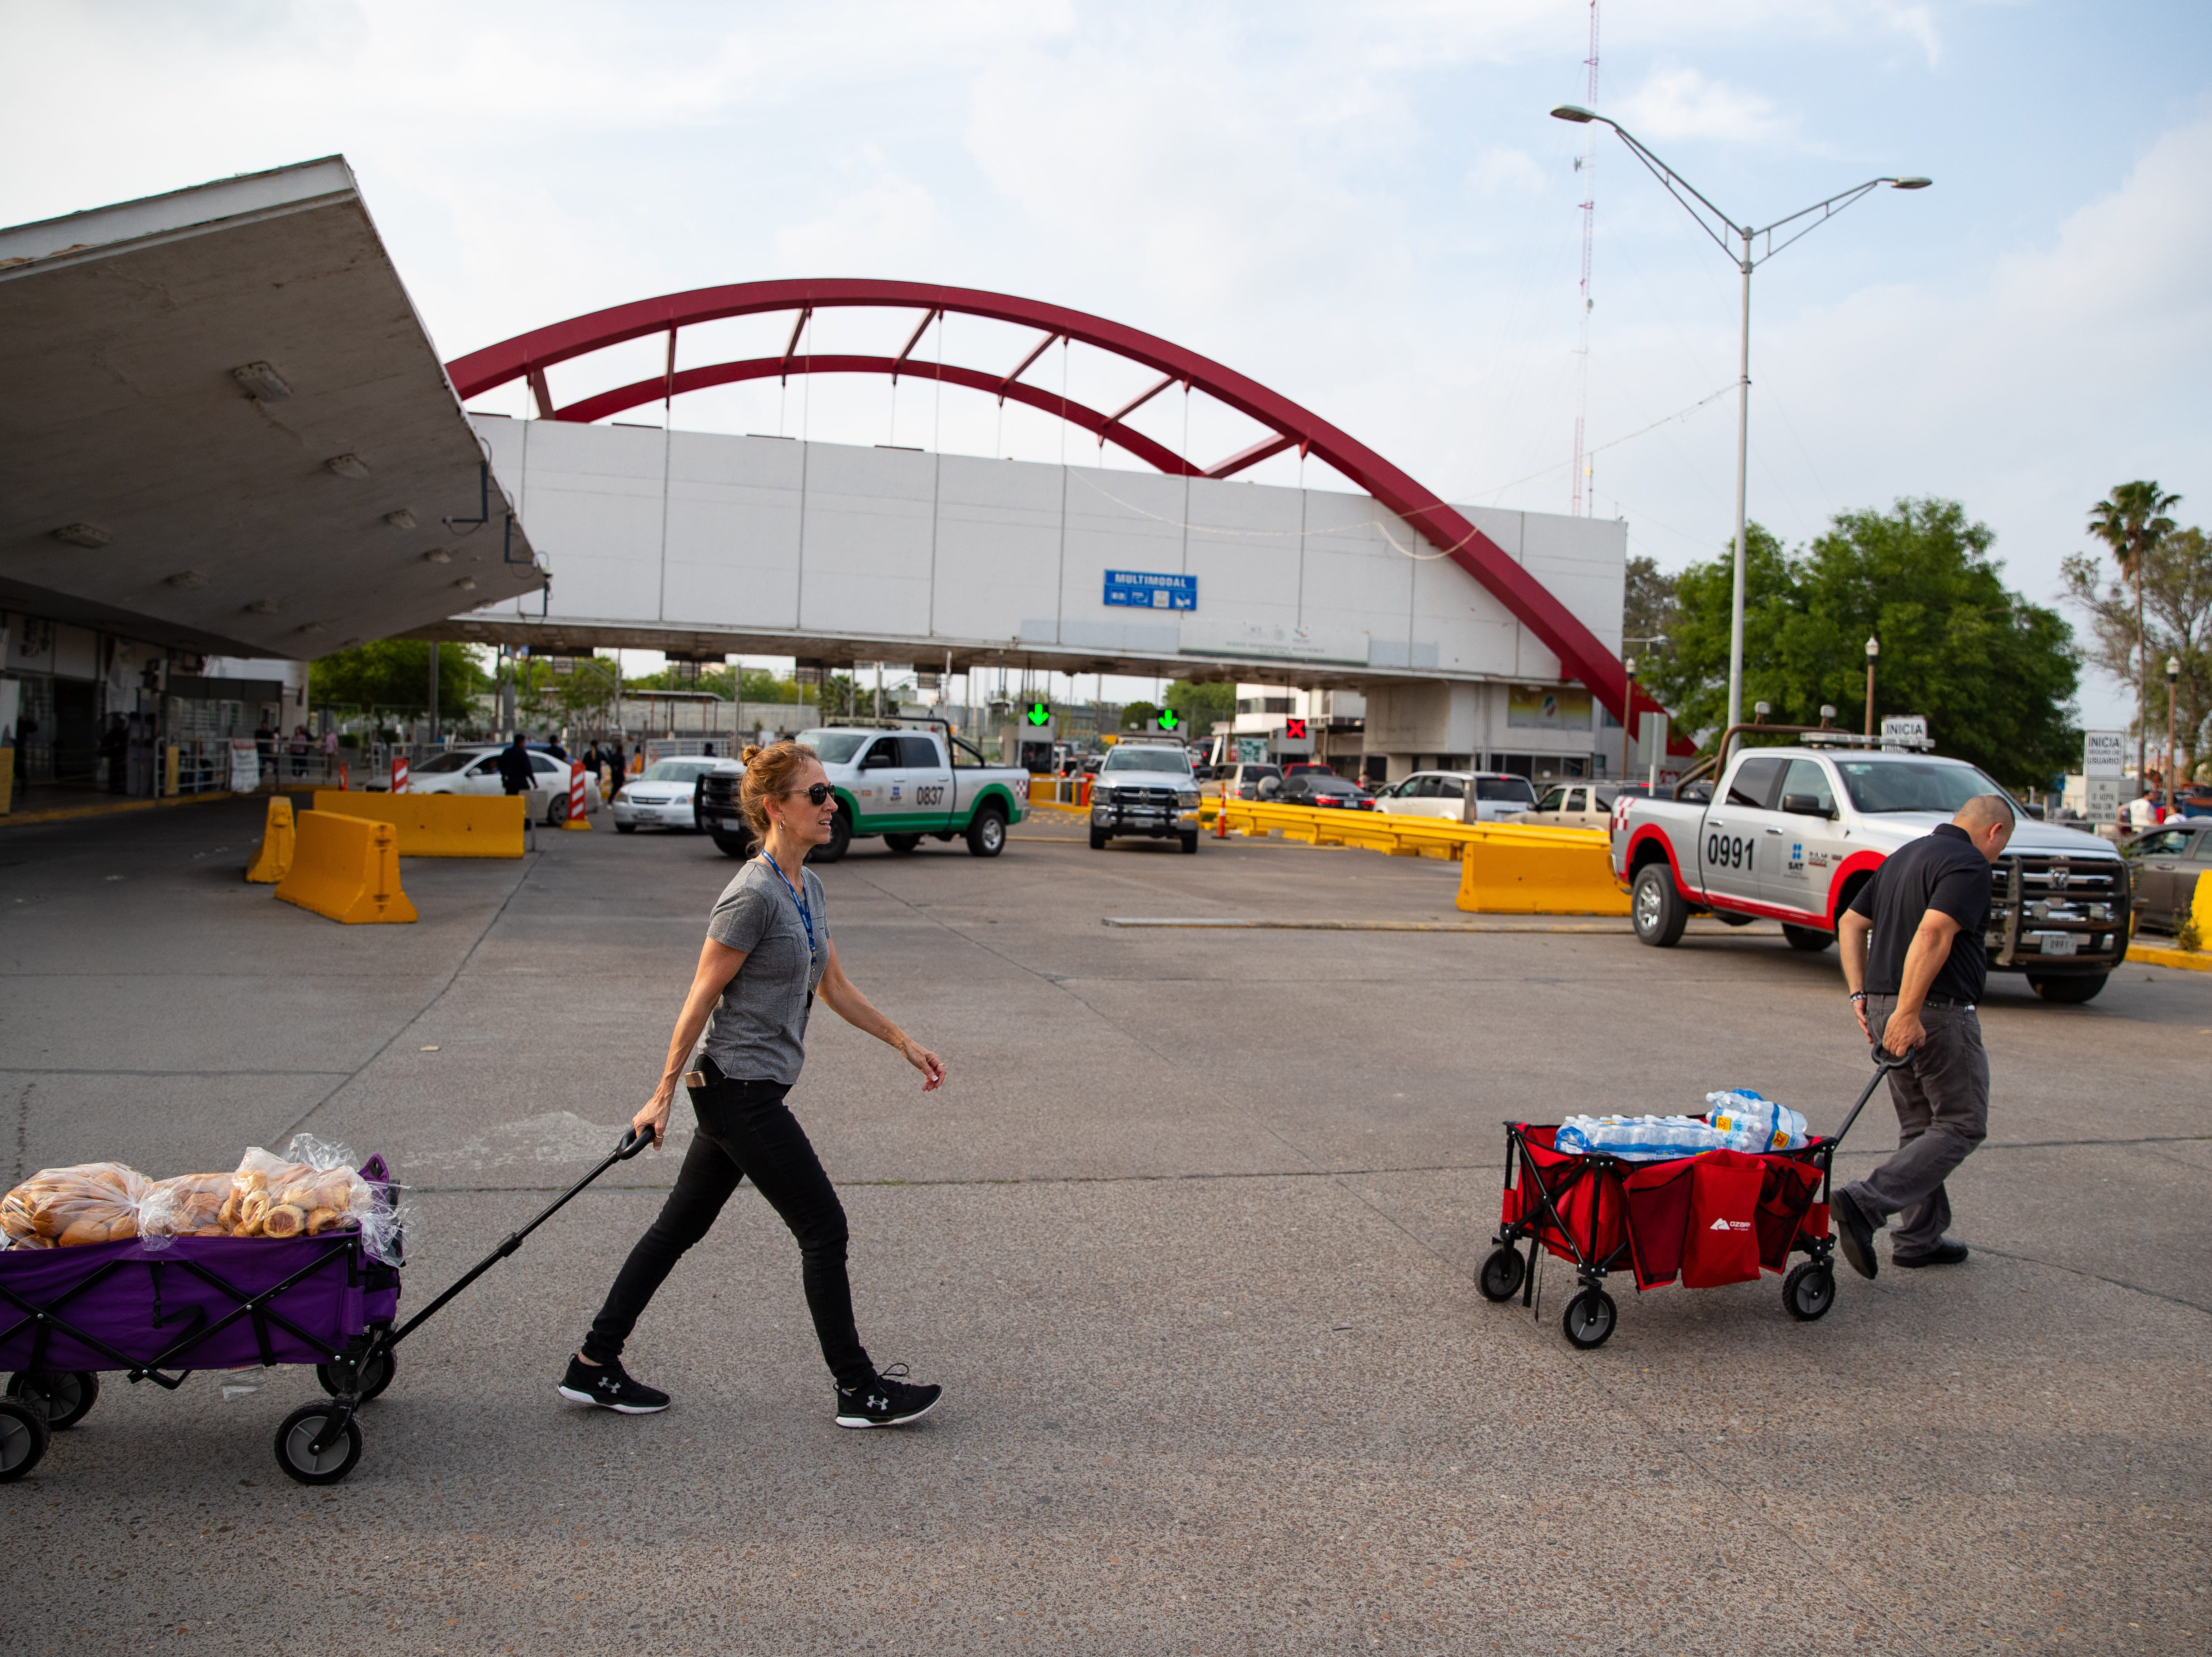 Mike Benavides, of Team Brownsville, and Diane Beckman of Austin, Texas, pull carts full of food and supplies across the road to feed dinner to a group of migrants waiting to seek asylum in the U.S camped out in a park next to the international bridge in Matamoros, Mexico on Thursday, April 4, 2019.